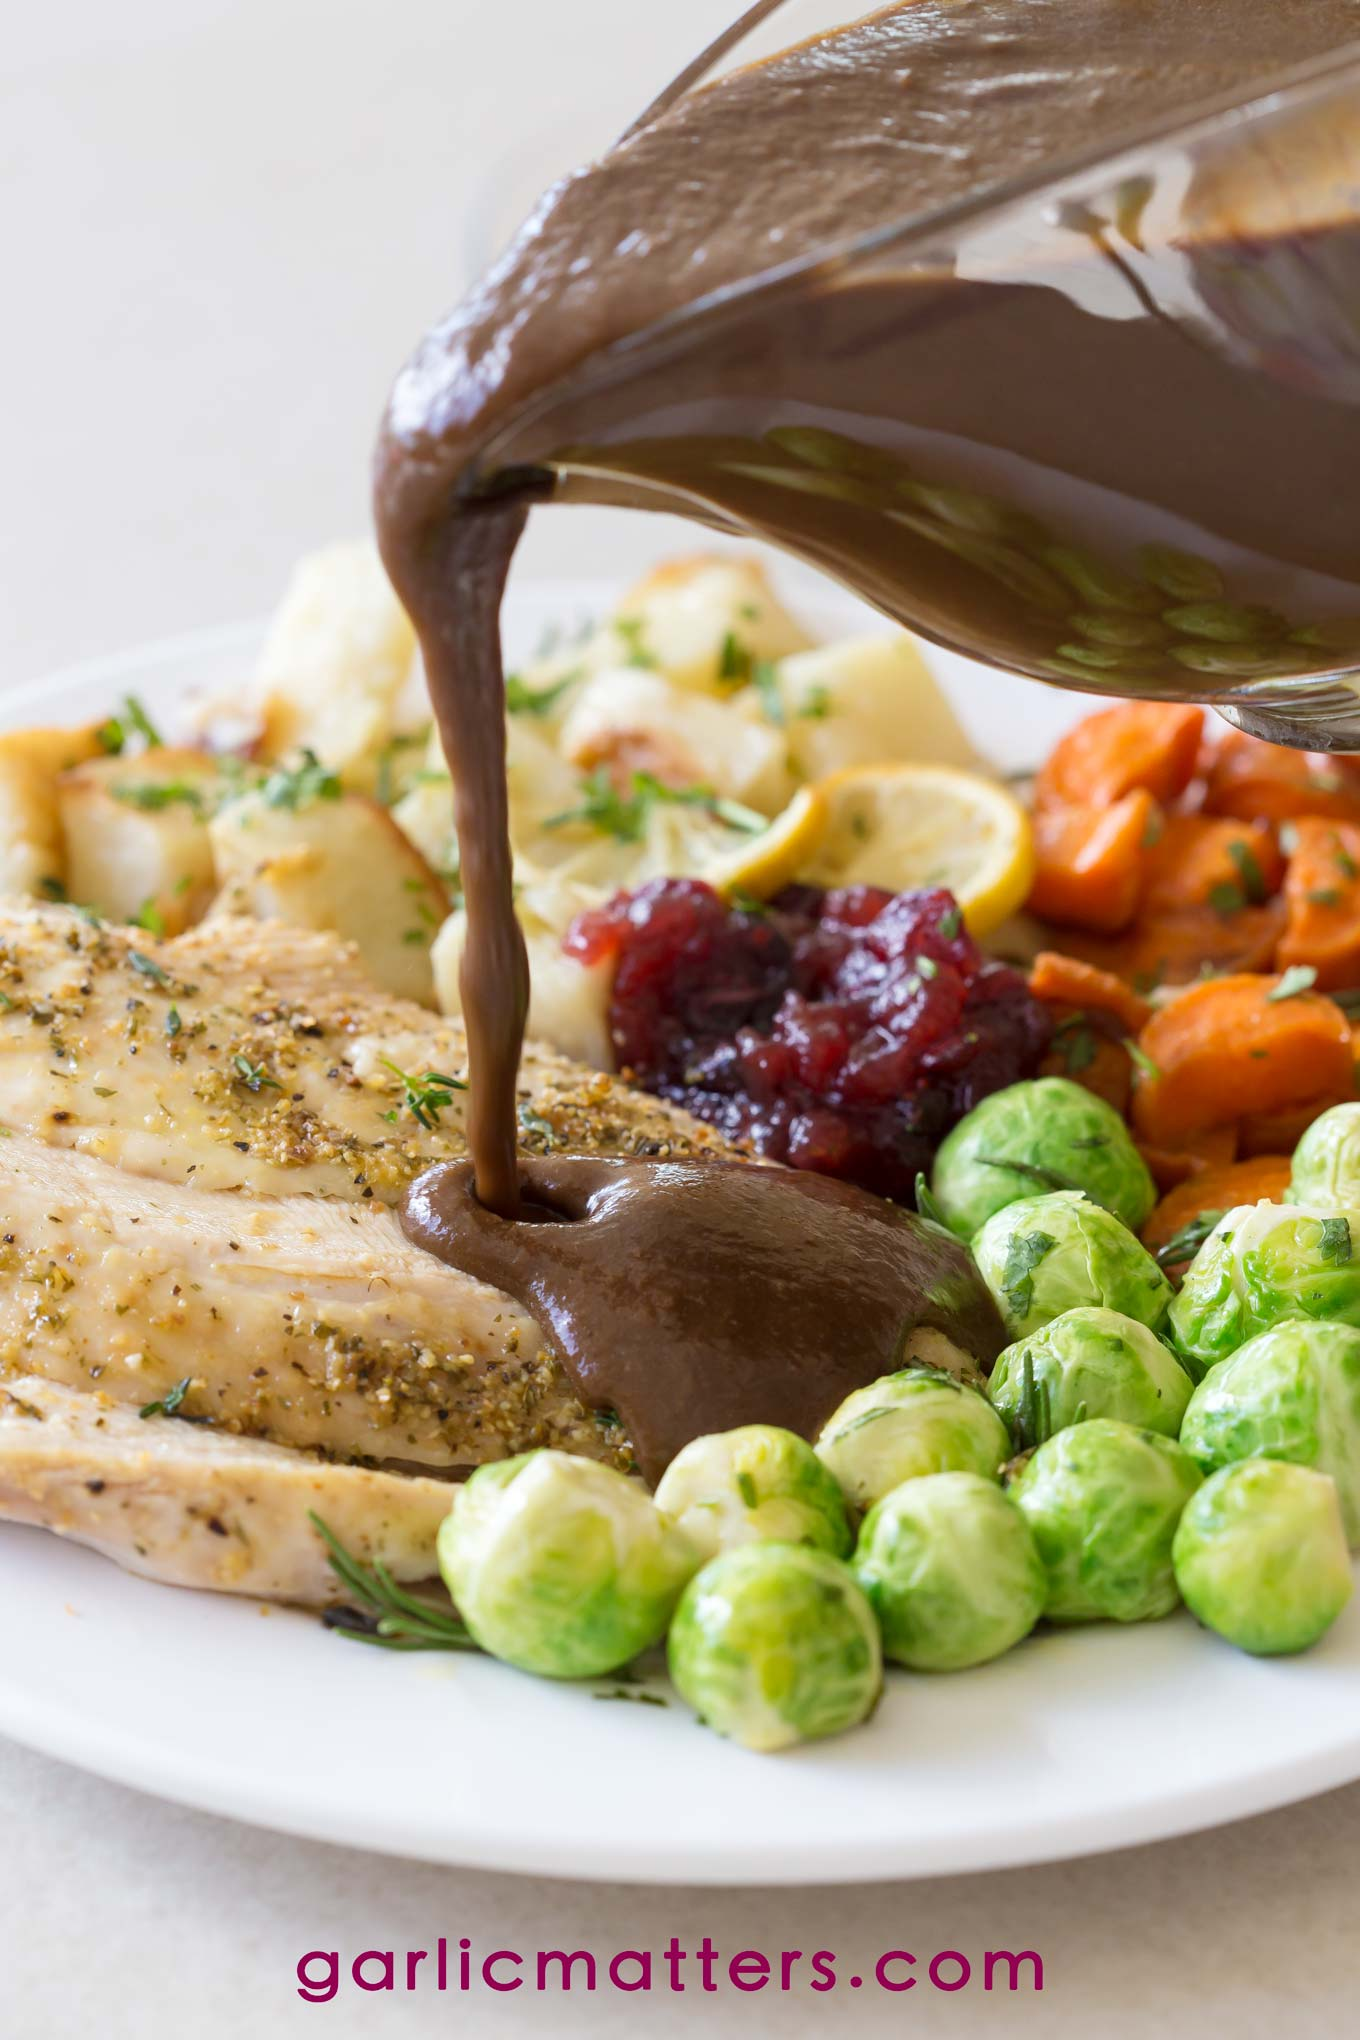 Caramelized onion and black garlic gravy recipe is perfect to go with any festive roast meal.